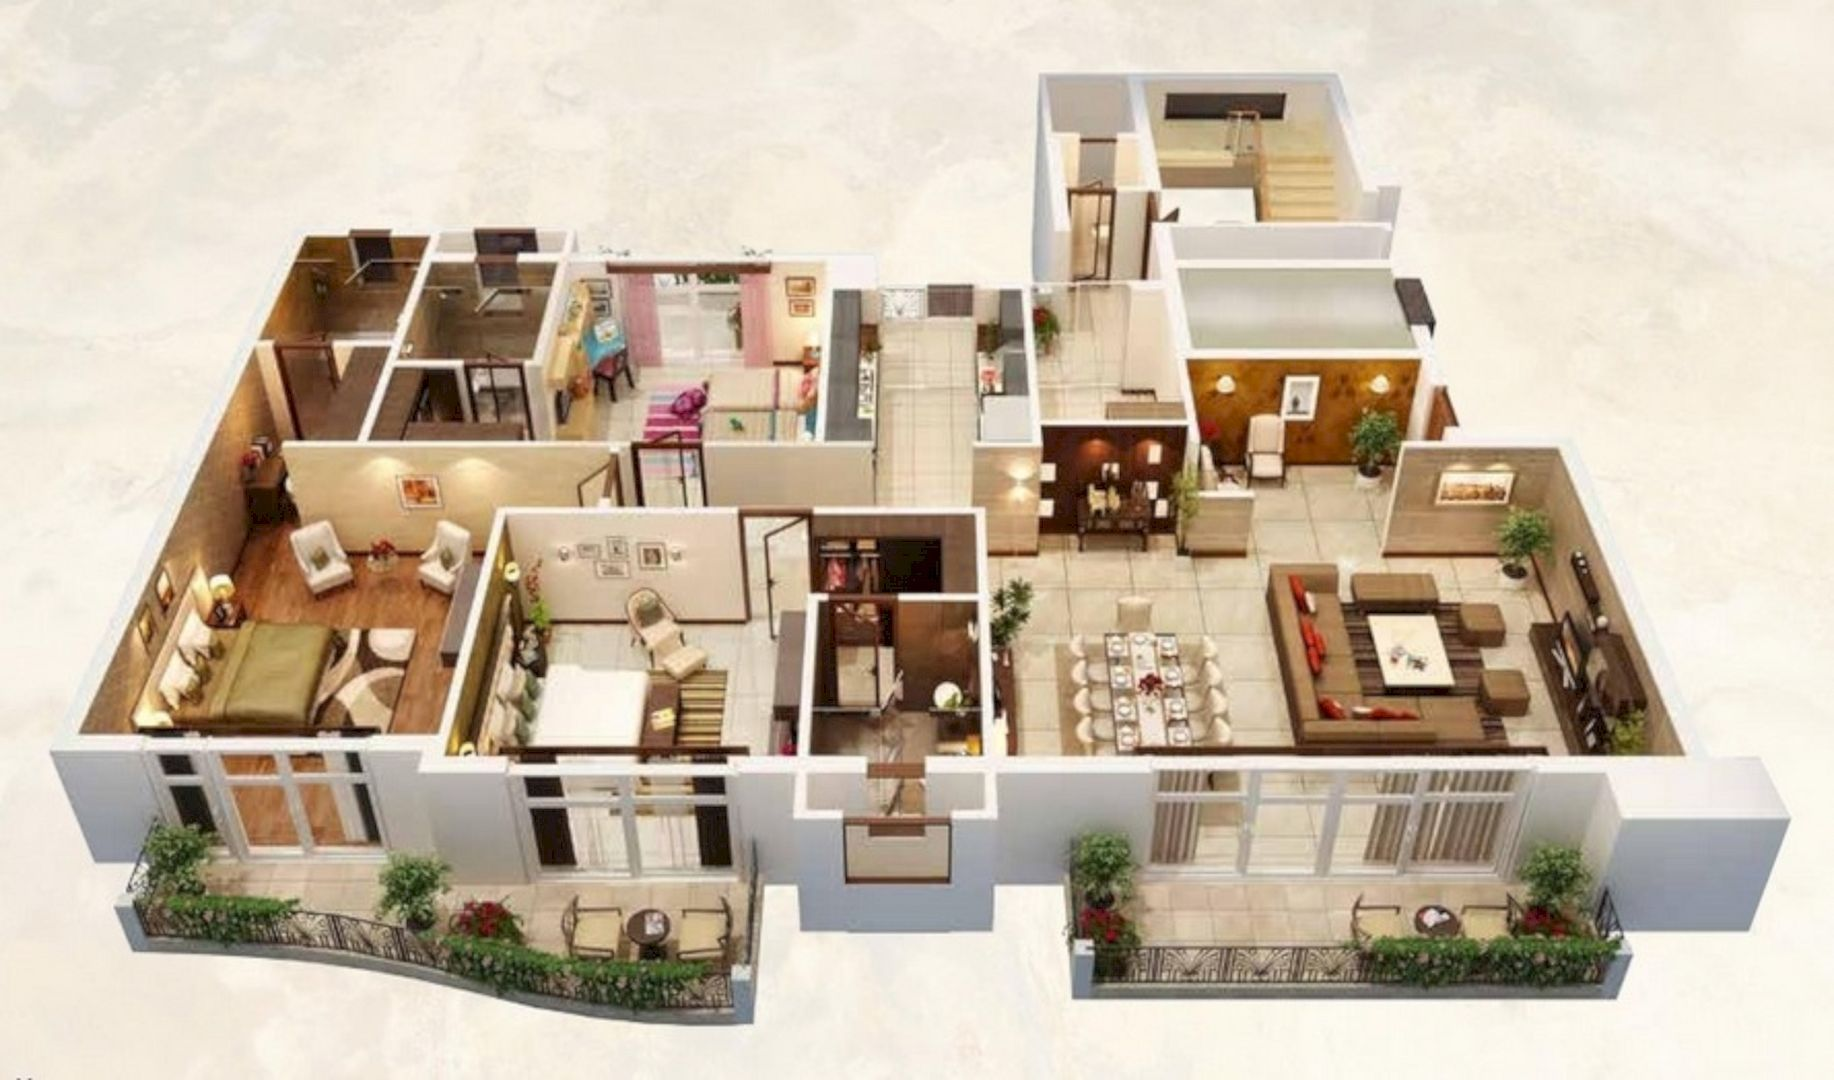 Why Do We Need 3d House Plan Before Starting The Project Mansion Floor Plan Apartment Floor Plans 3d House Plans